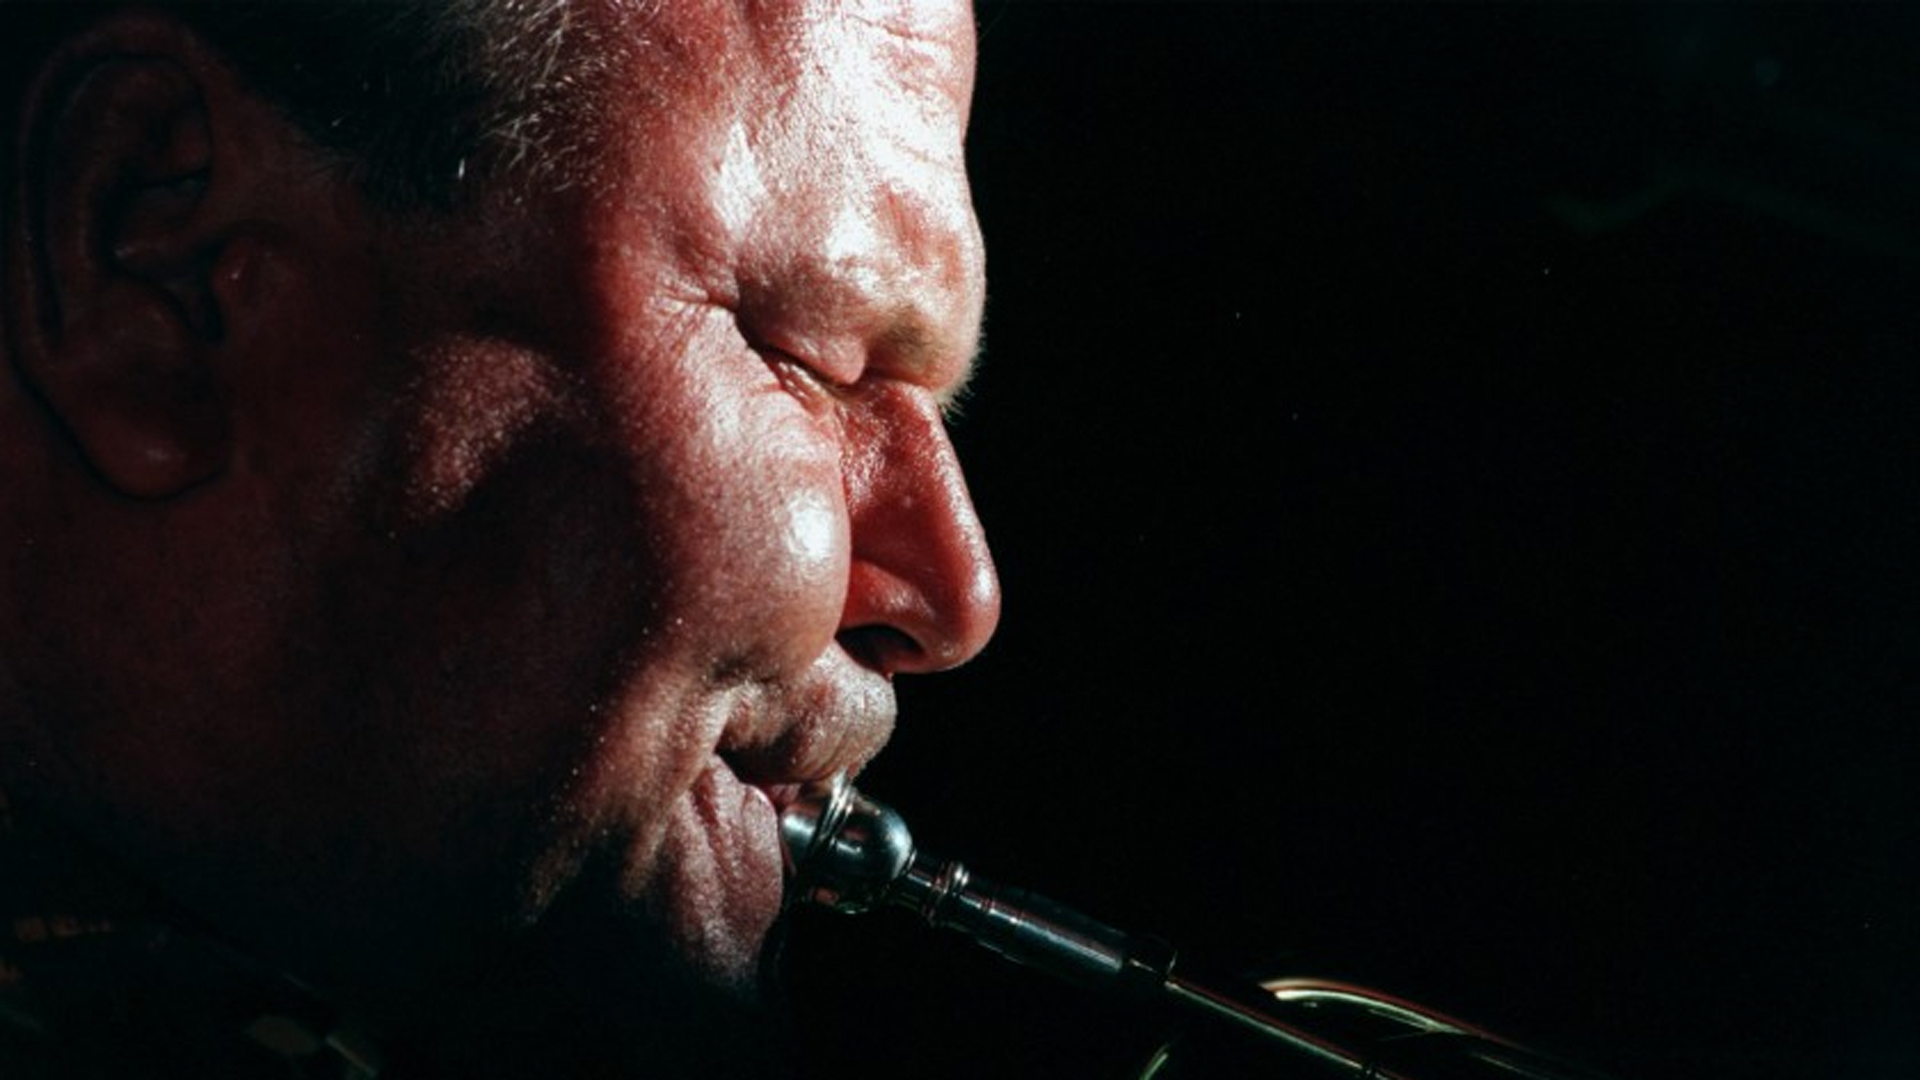 Jack Sheldon performs at Chadney's in Burbank on June 14, 1998. (Credit: AW¥Annie Wells/Los Angeles Times)